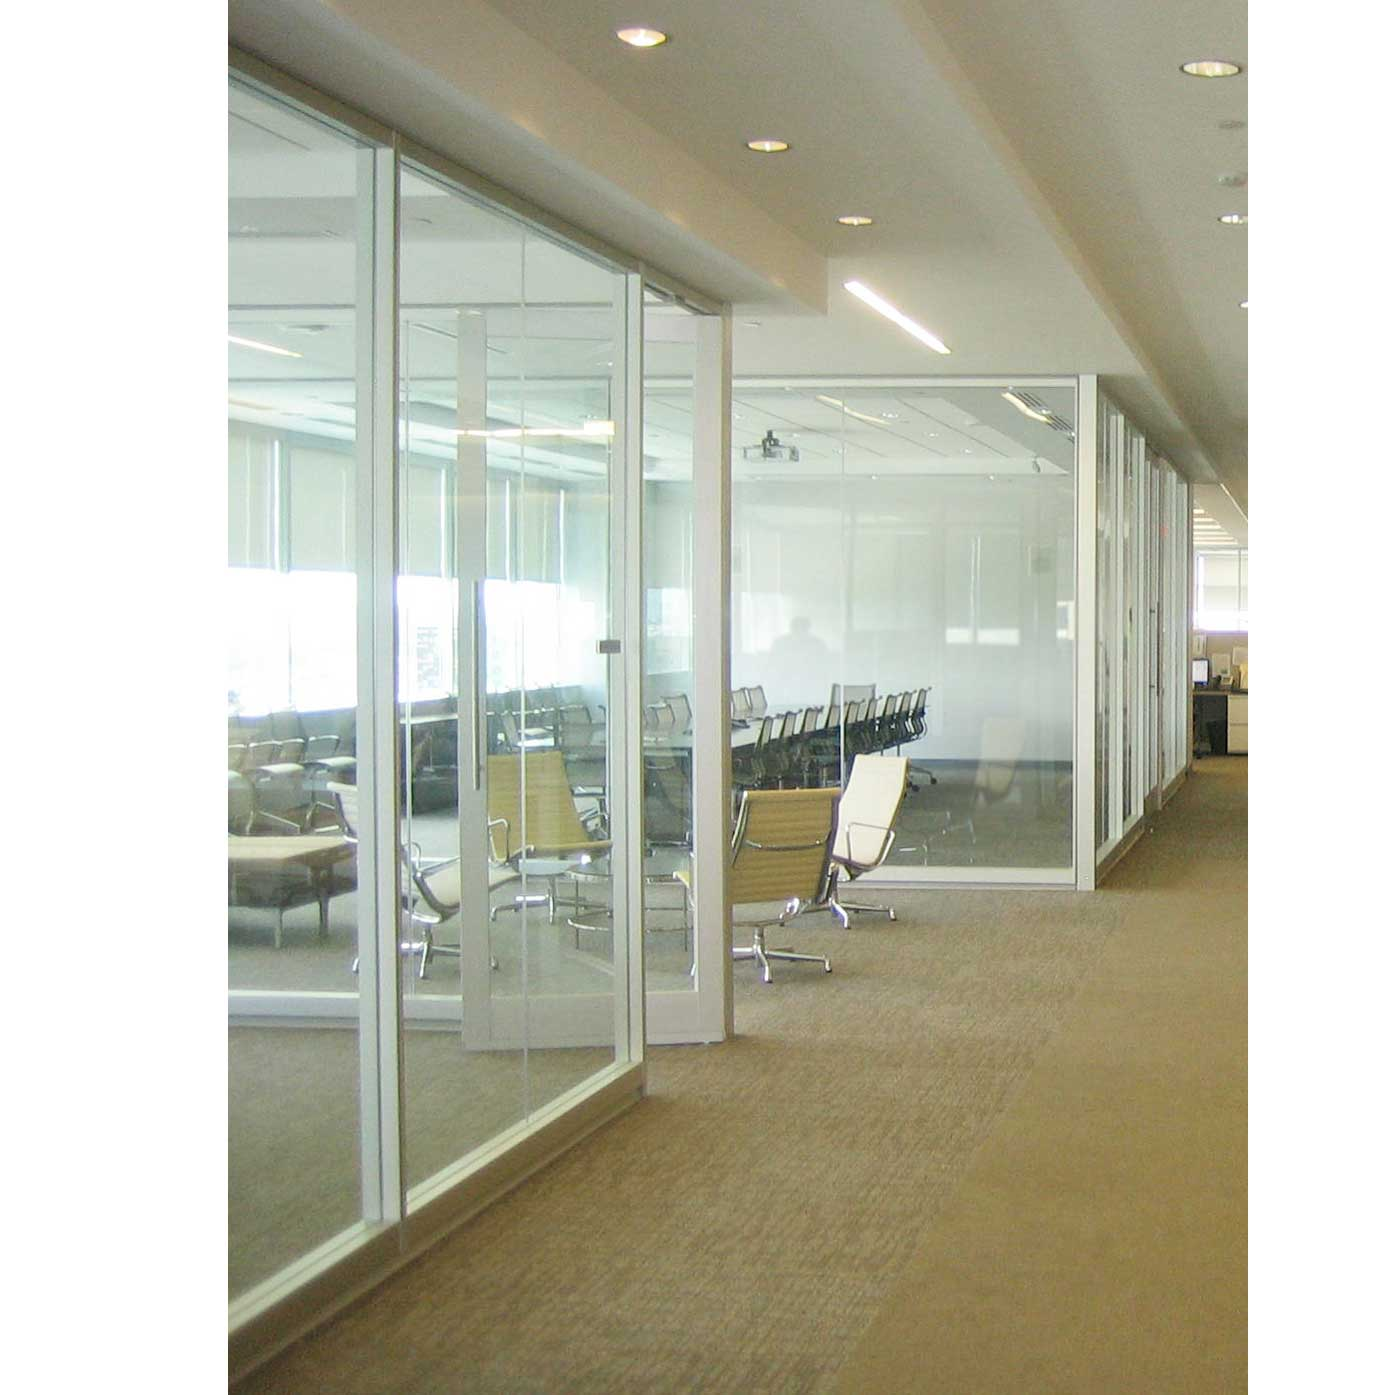 Interior office door with glass panel looks elegant